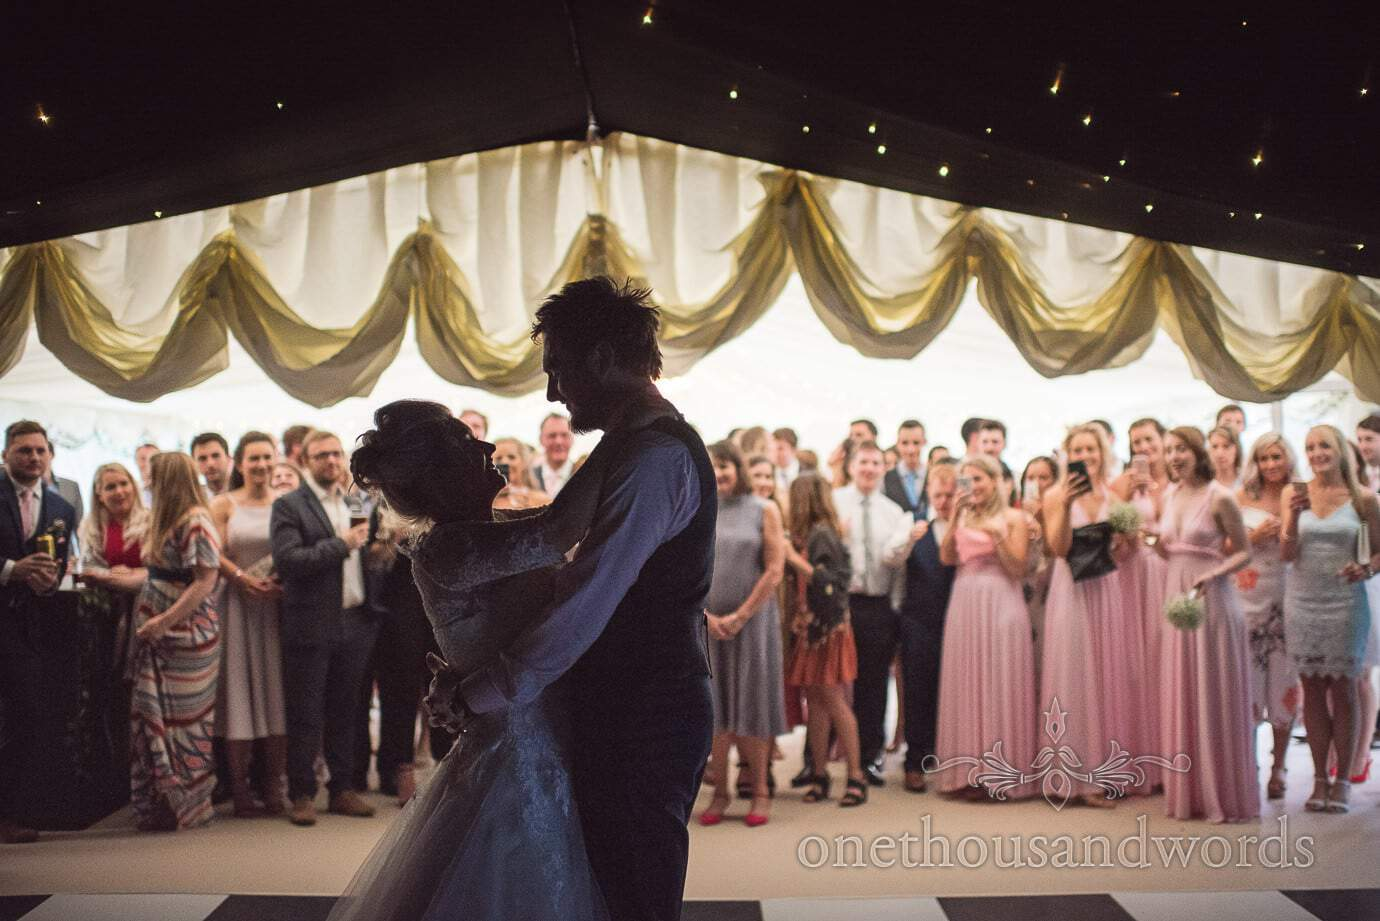 Bride and groom first dance silhouette against marquee reveal and wedding guests